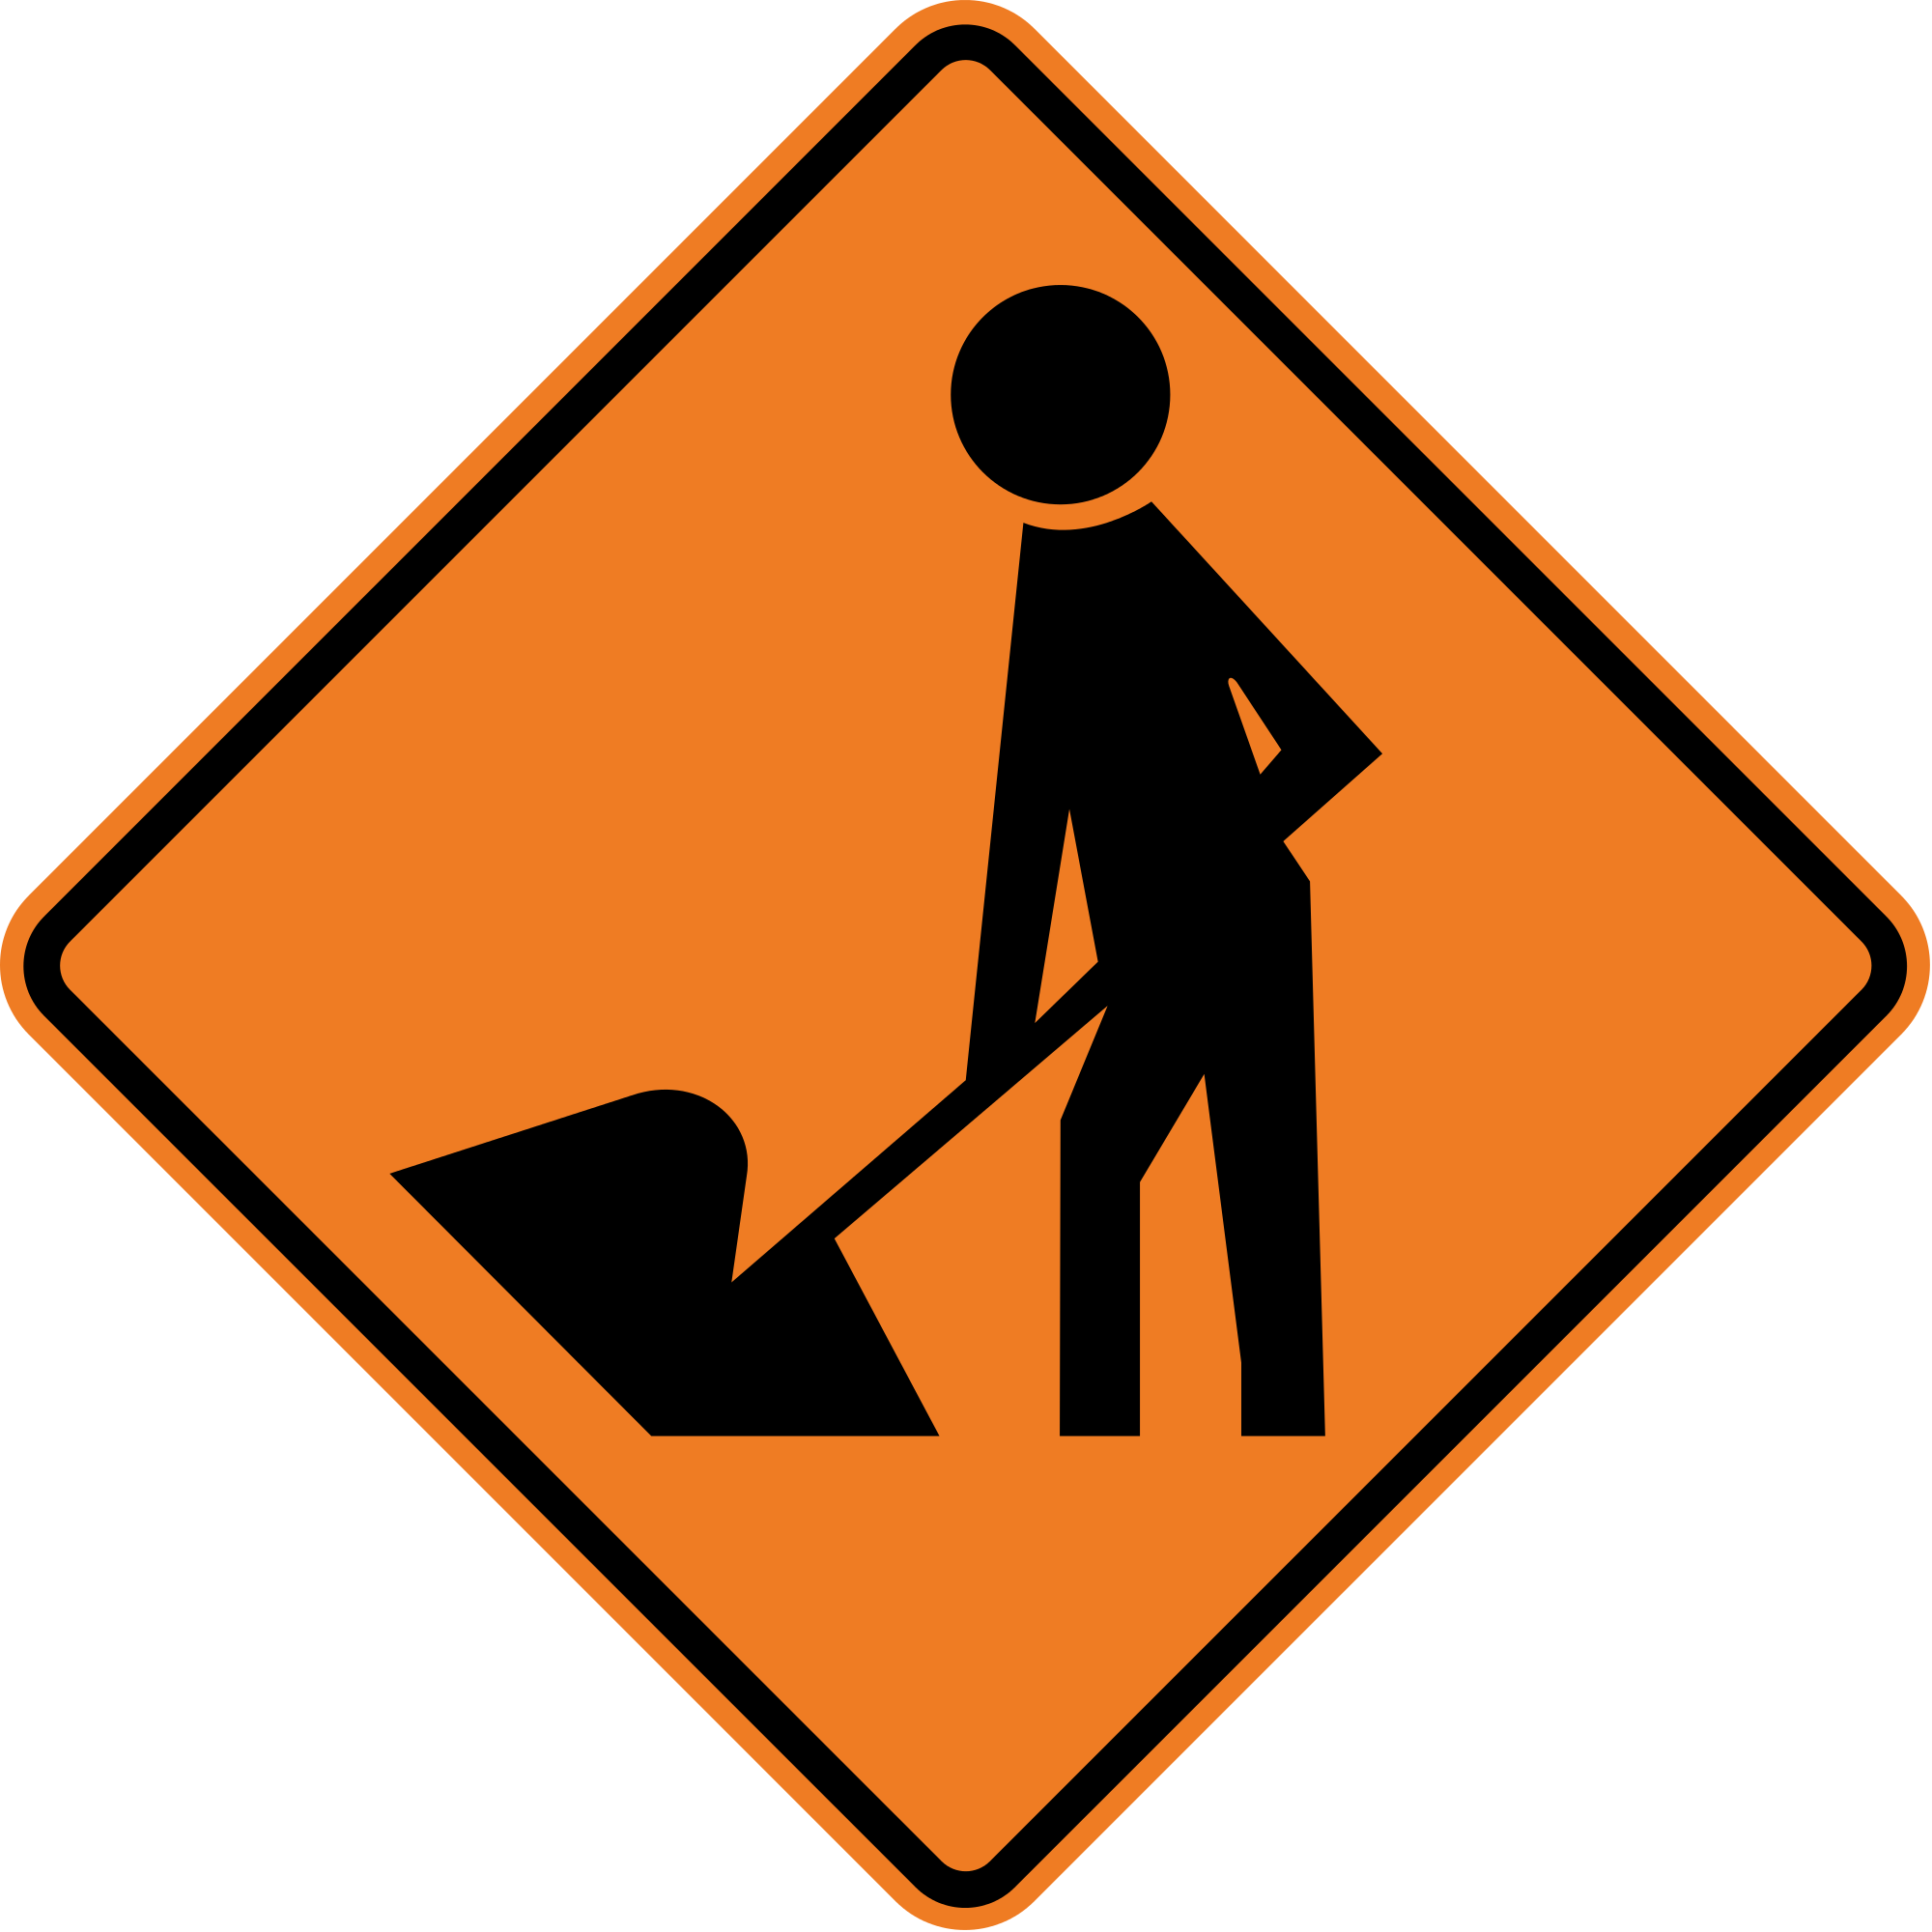 Clipart road road repair. File new zealand sign